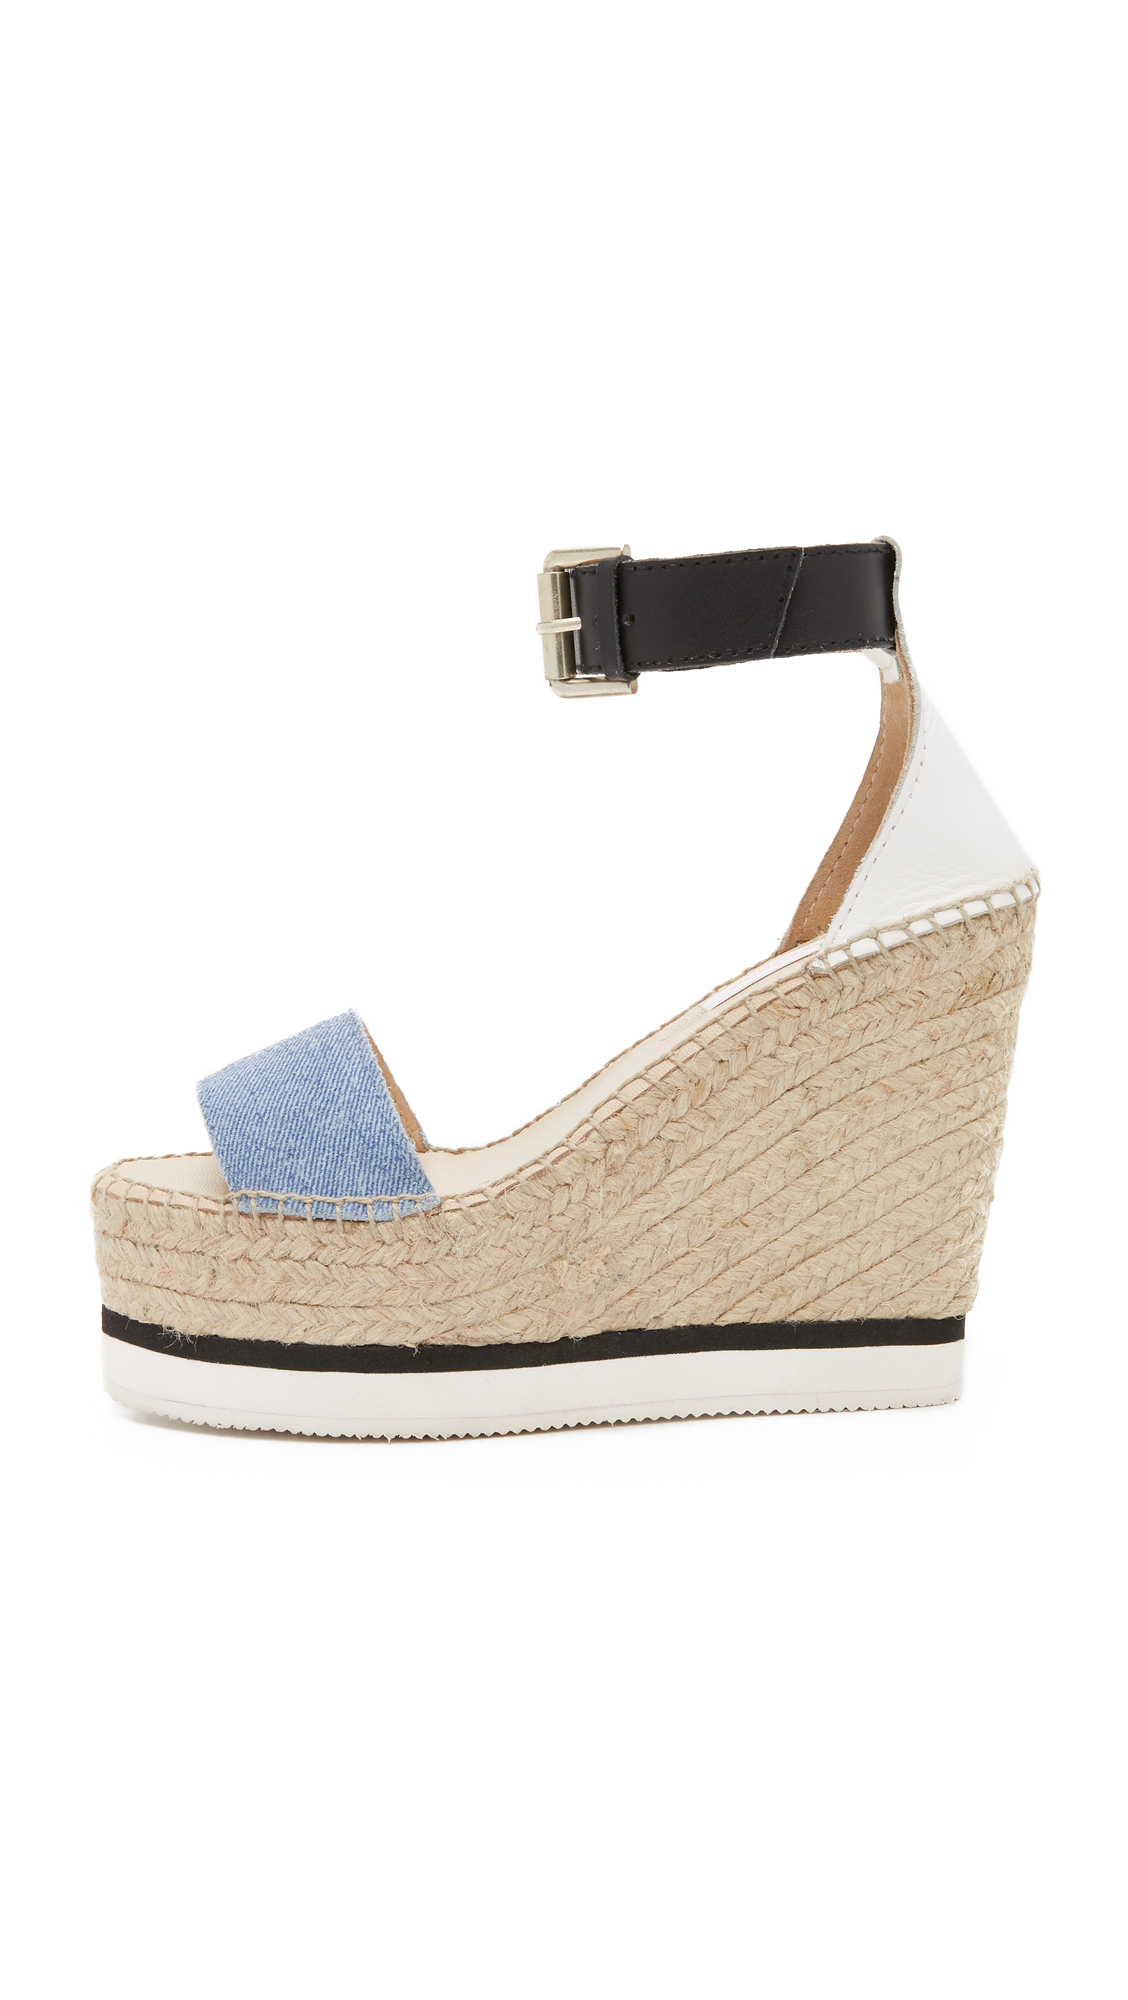 ad148972282e Lyst - See By Chloé Glyn Espadrille Wedge Sandals in Blue